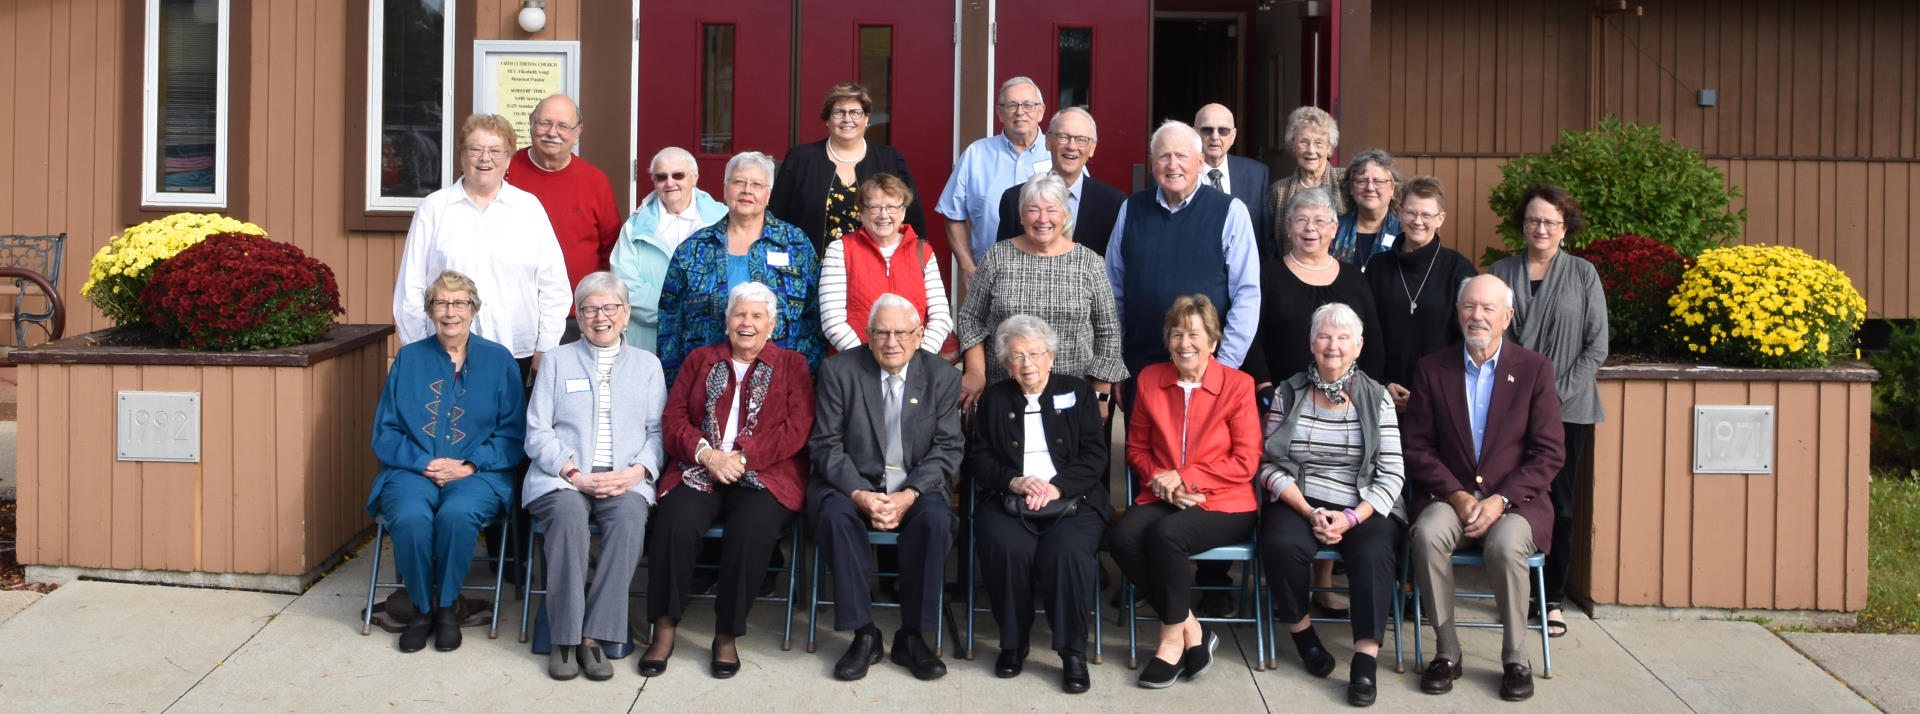 Charter Members during our 50th Anniversary Celebration